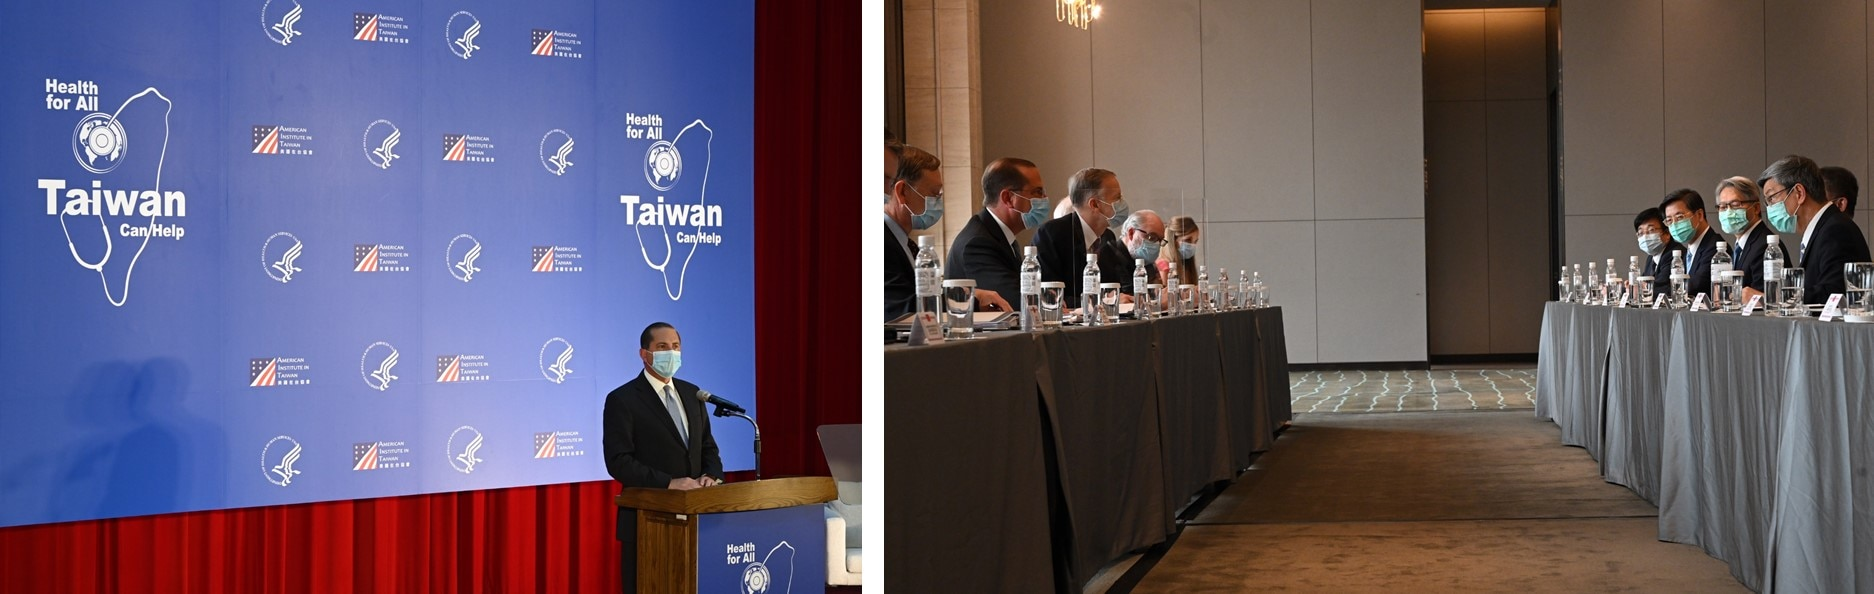 HHS Secretary Azar delivered remarks at National Taiwan University and met with COVID-19 experts in Taipei, Taiwan on August 11, 2020.